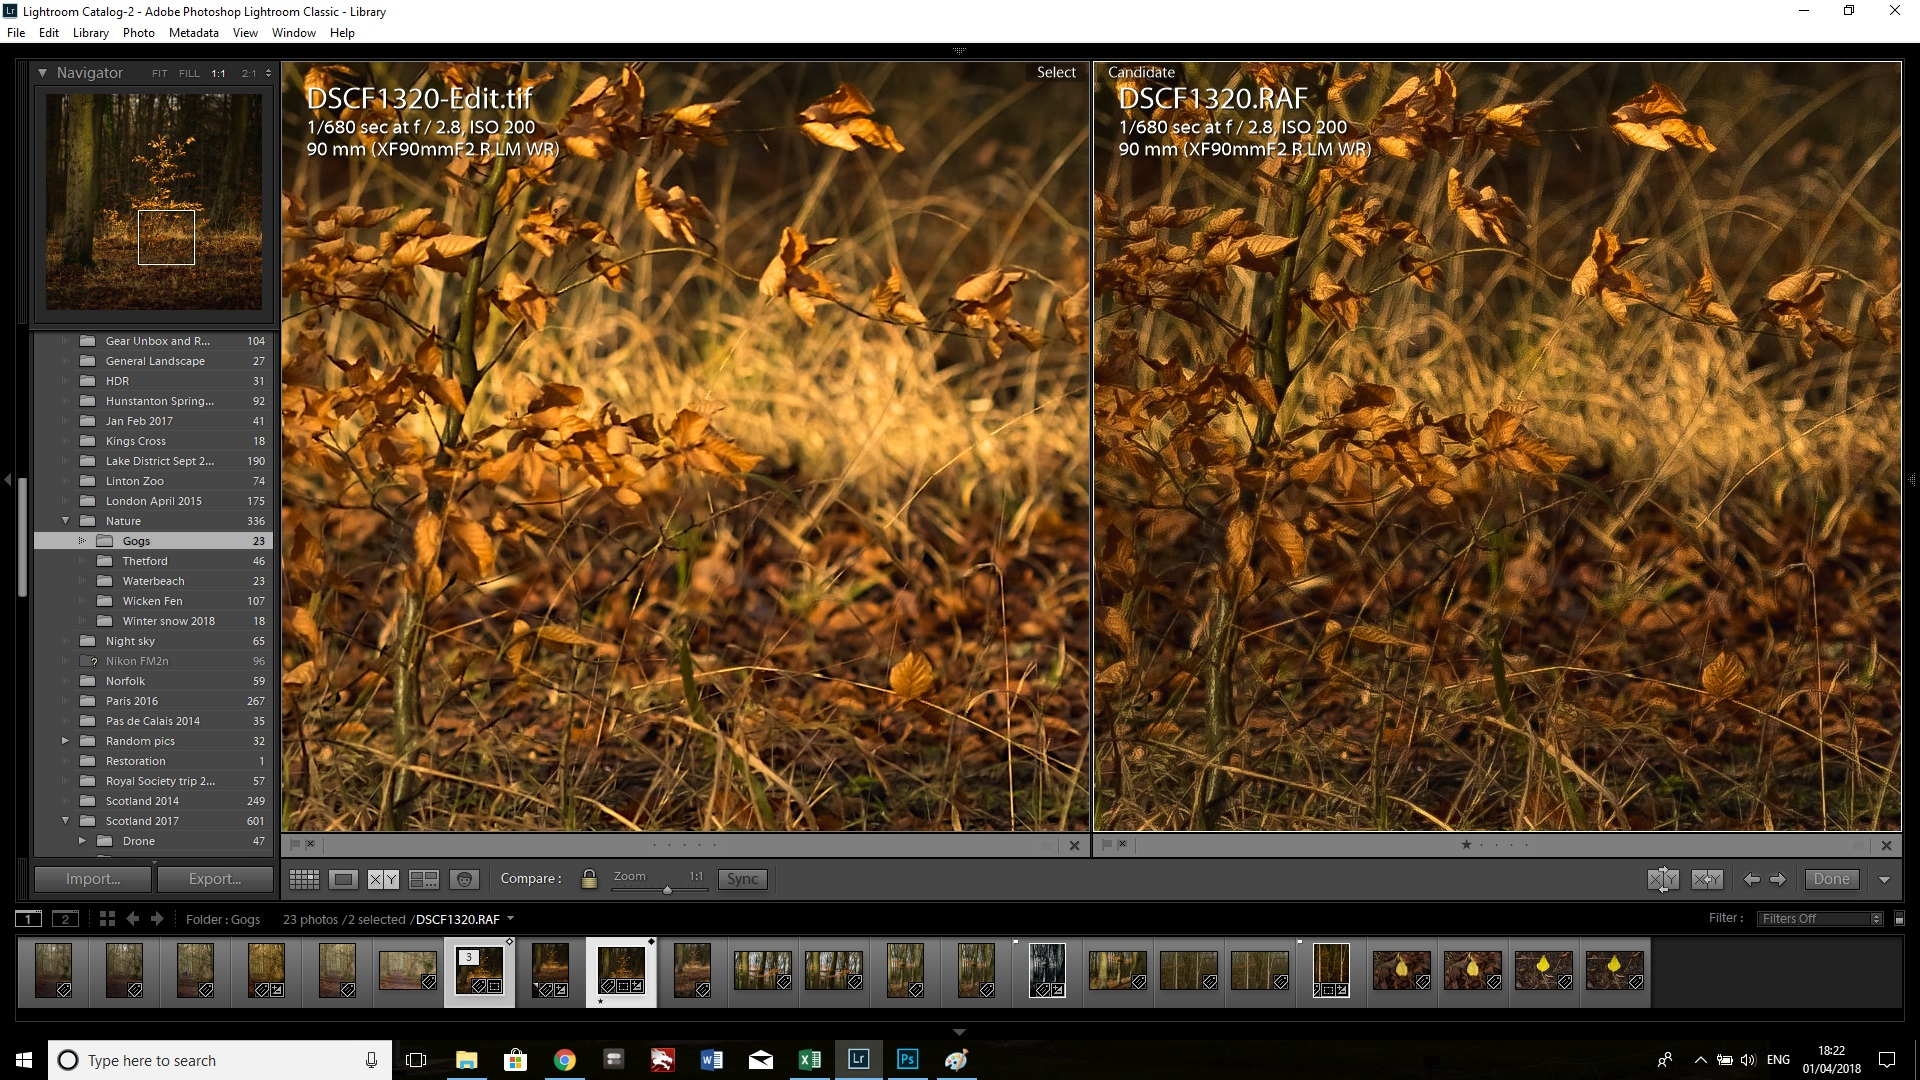 The improvement in sharpness and lack of artifacts on the PS sharpened image on the left is more noticeable in the grassy area at the bottom of the tree.